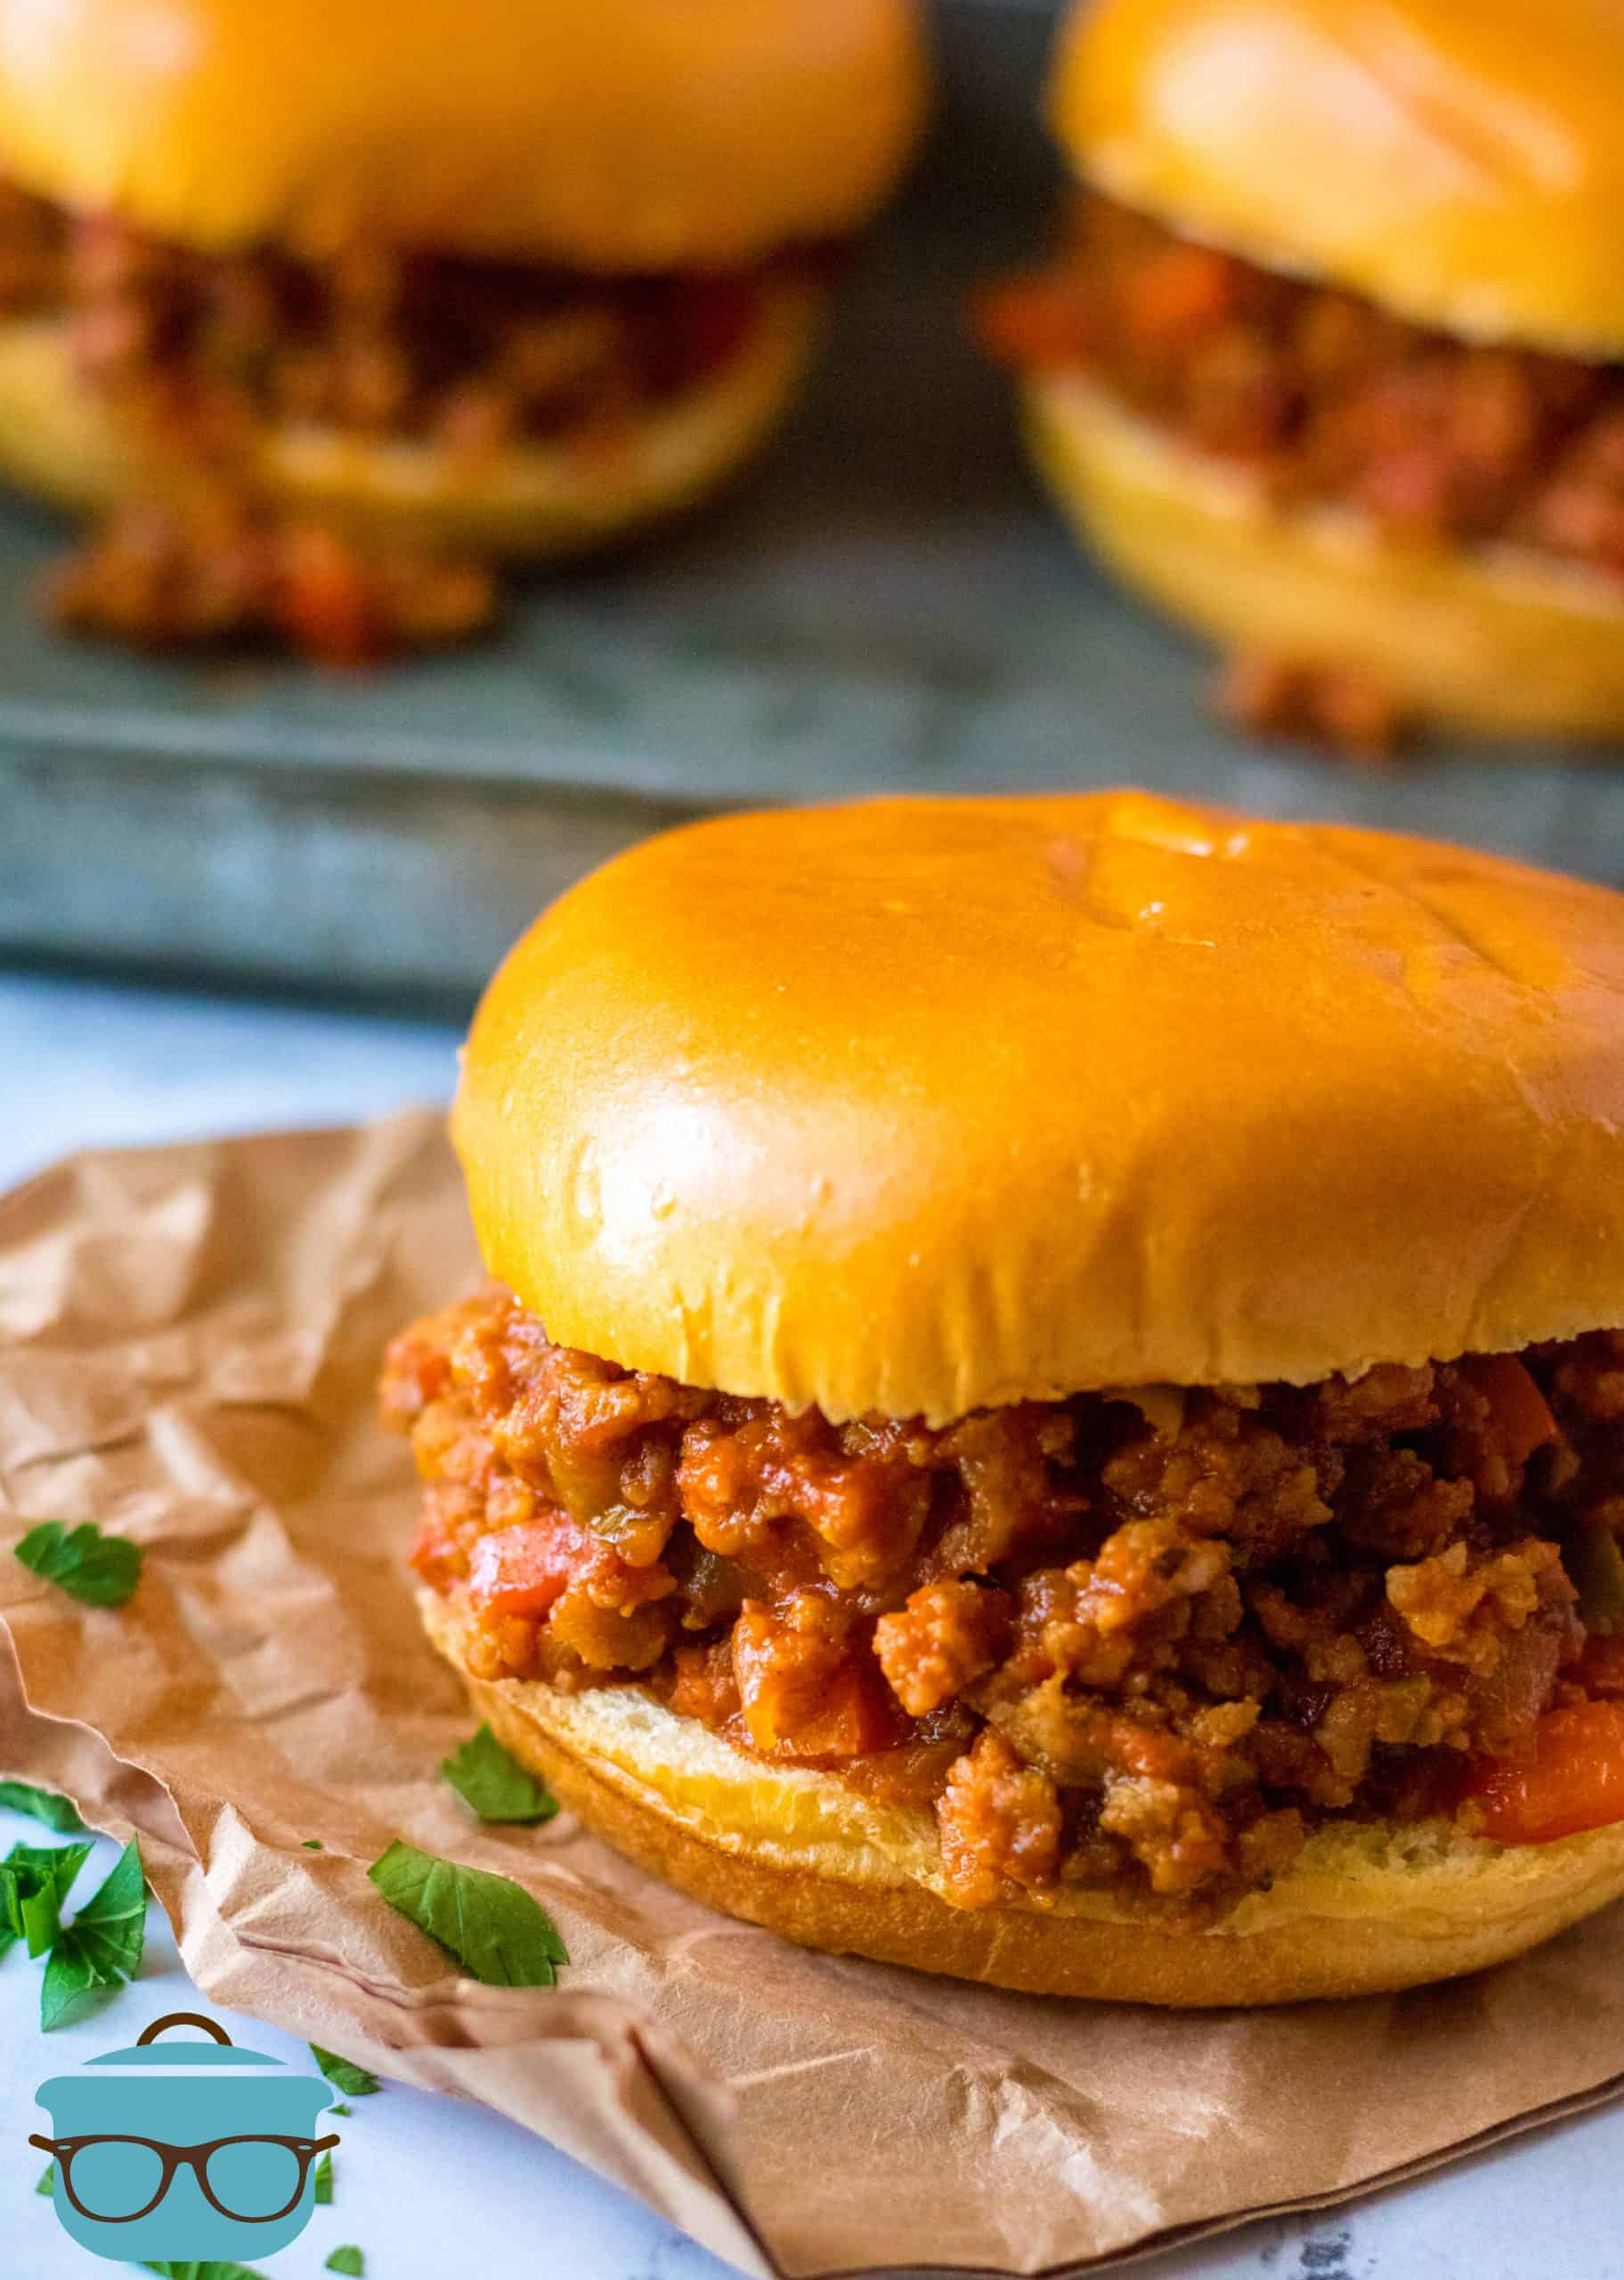 Sausage and Peppers Italian Sloppy Joes shown served on Brioche Buns and placed on a brown napkin.